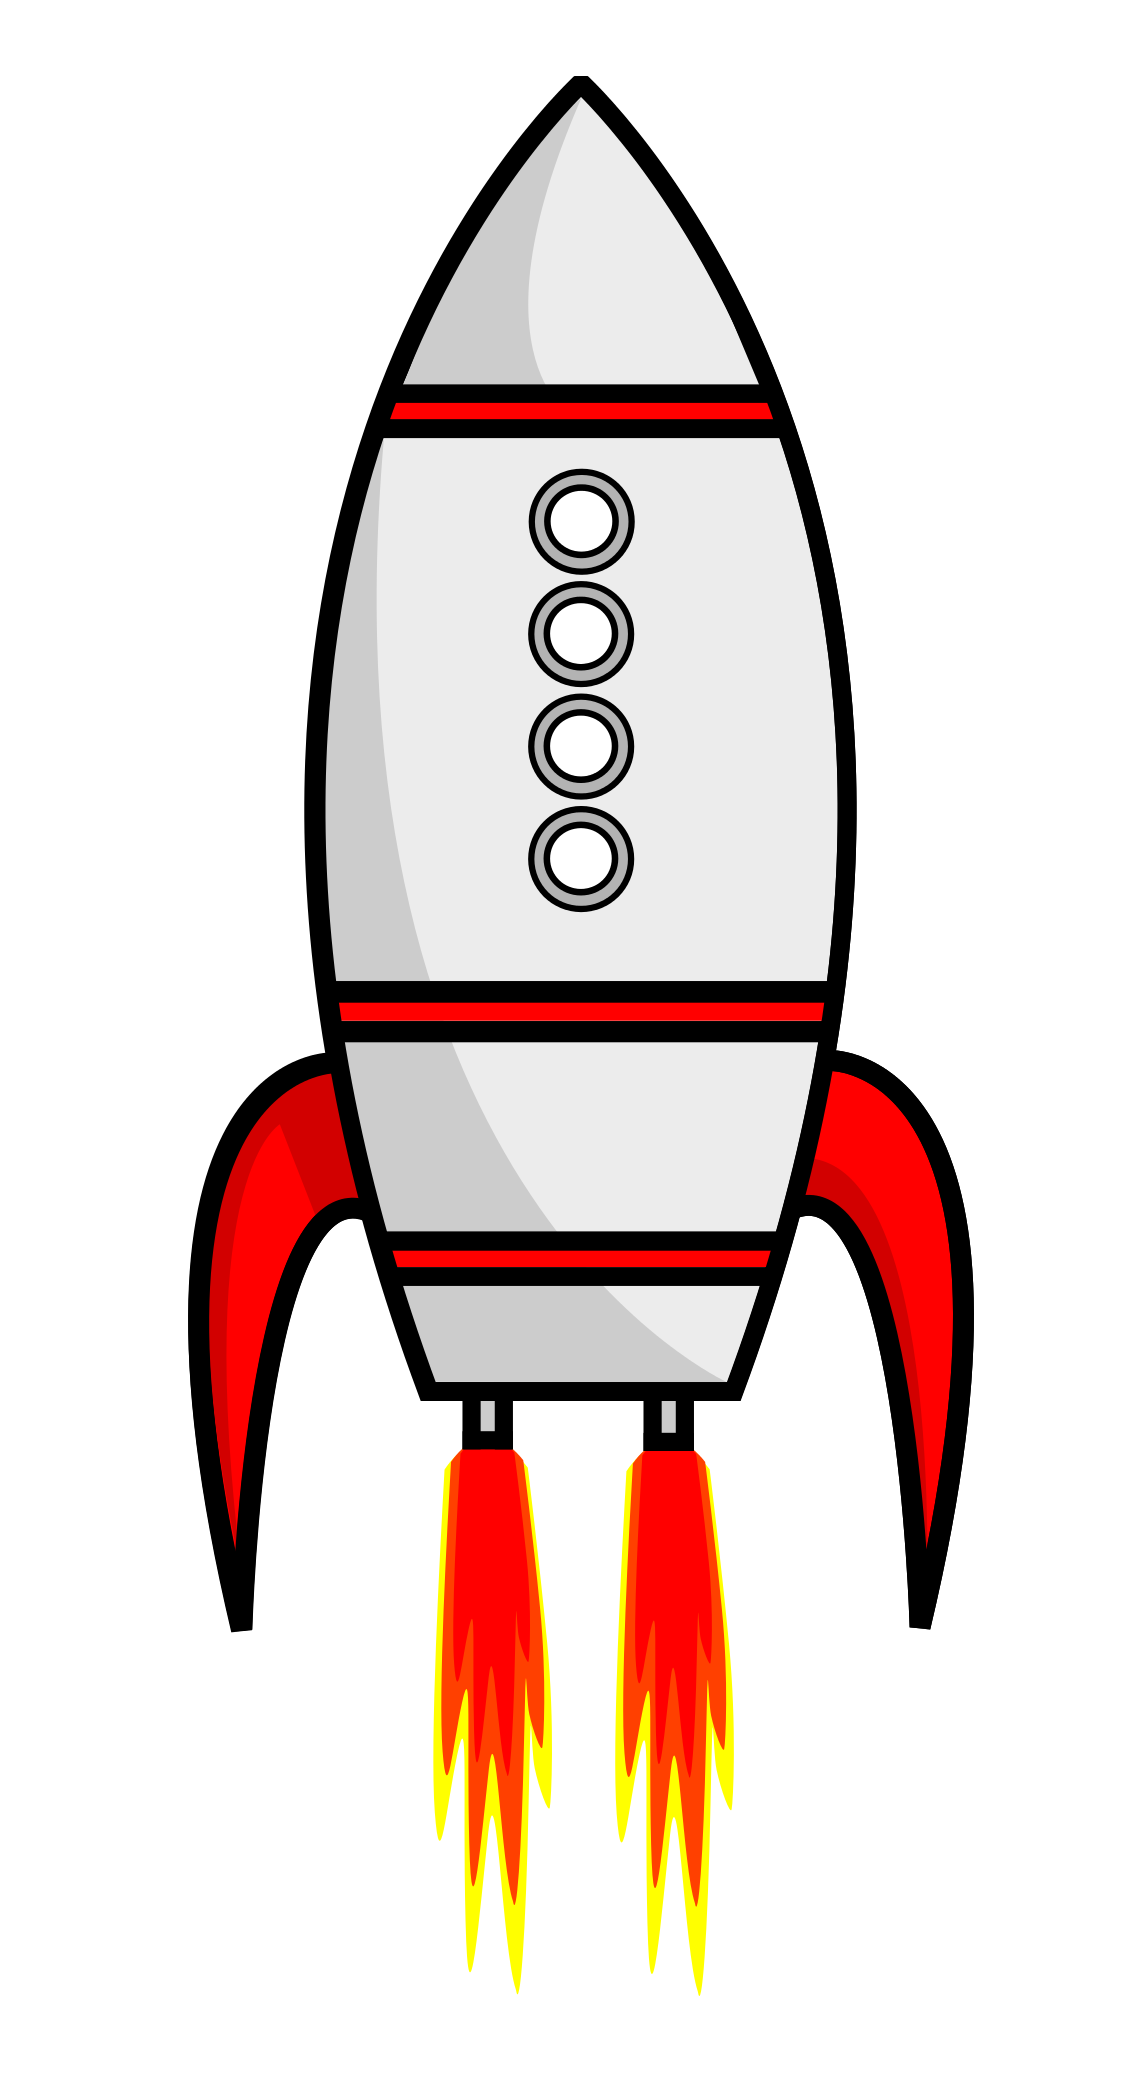 rocket vectot png transparent image pngpix #19702